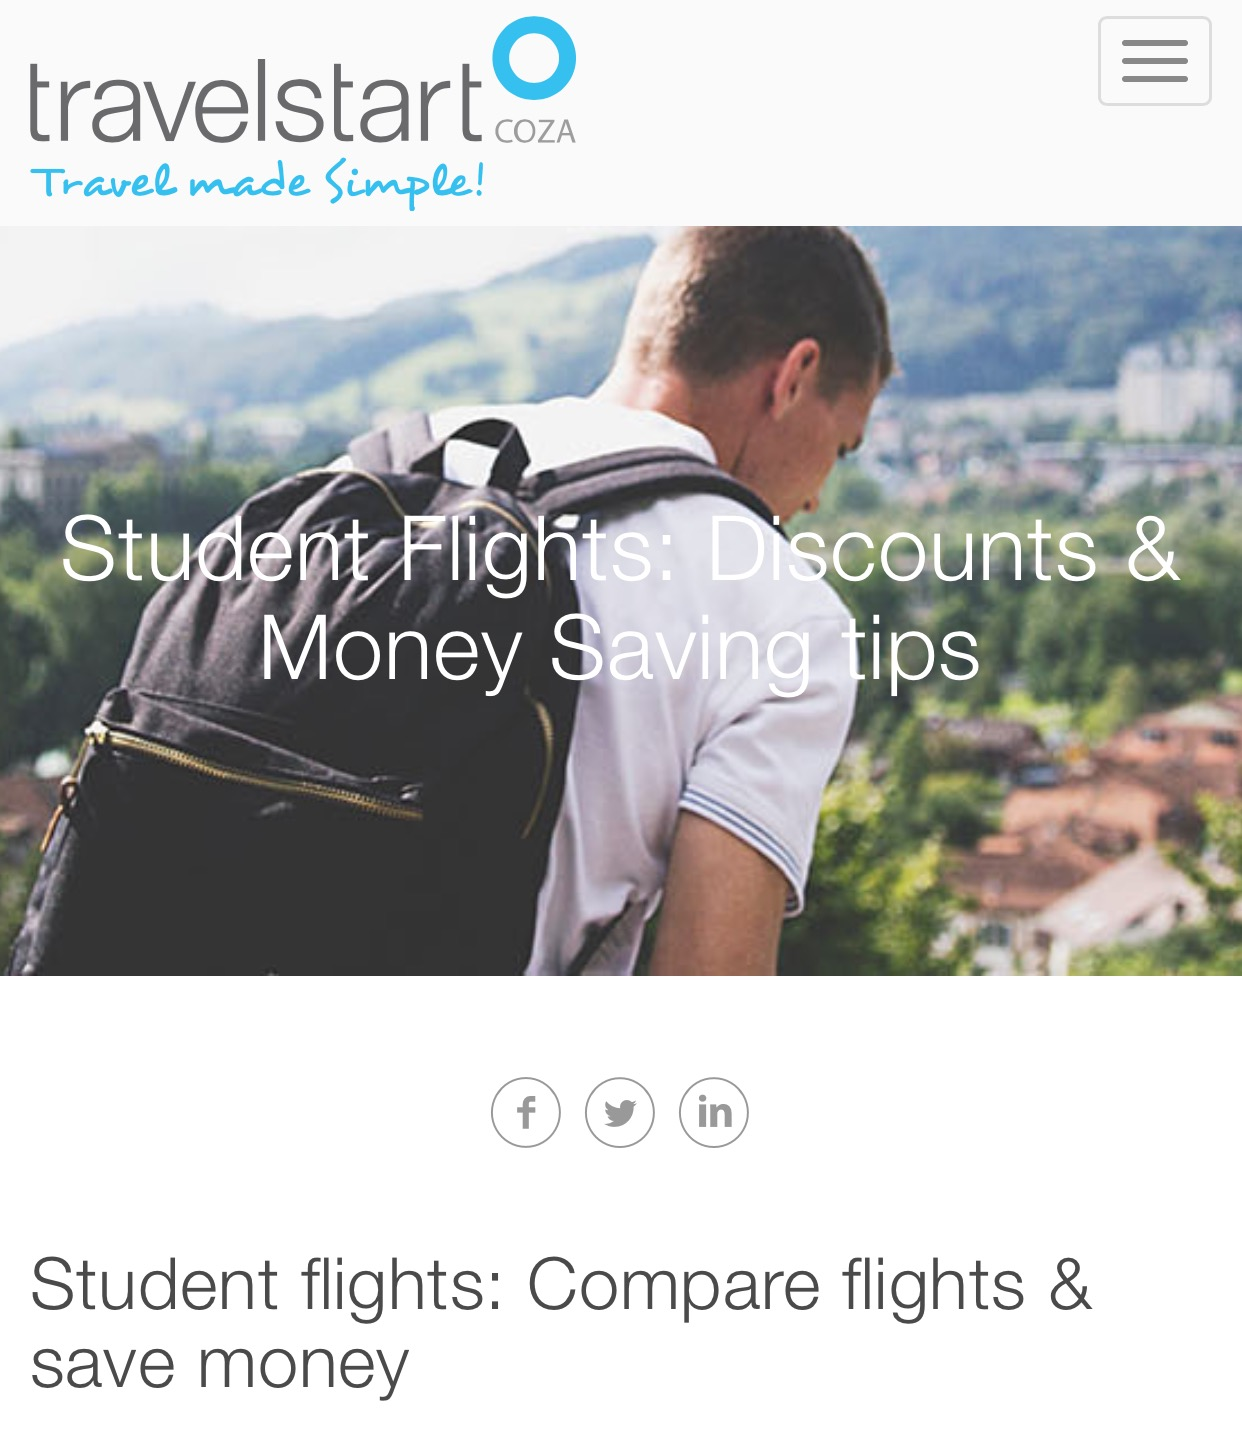 Travelstart student flights homepage for travel tips and cheap student flights